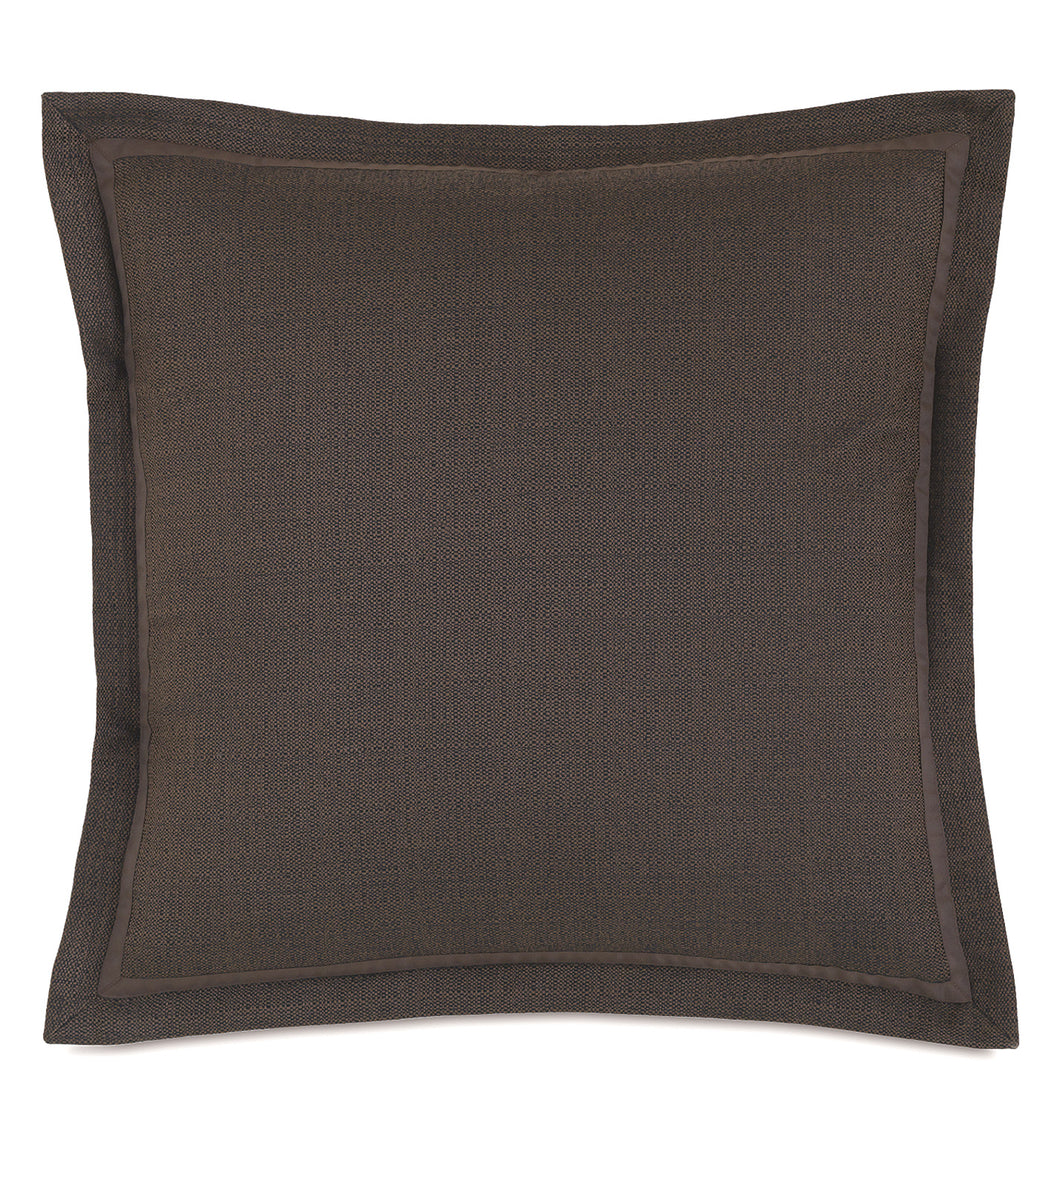 Mocha Log Cabin Solid Euro Sham Self Flange 27